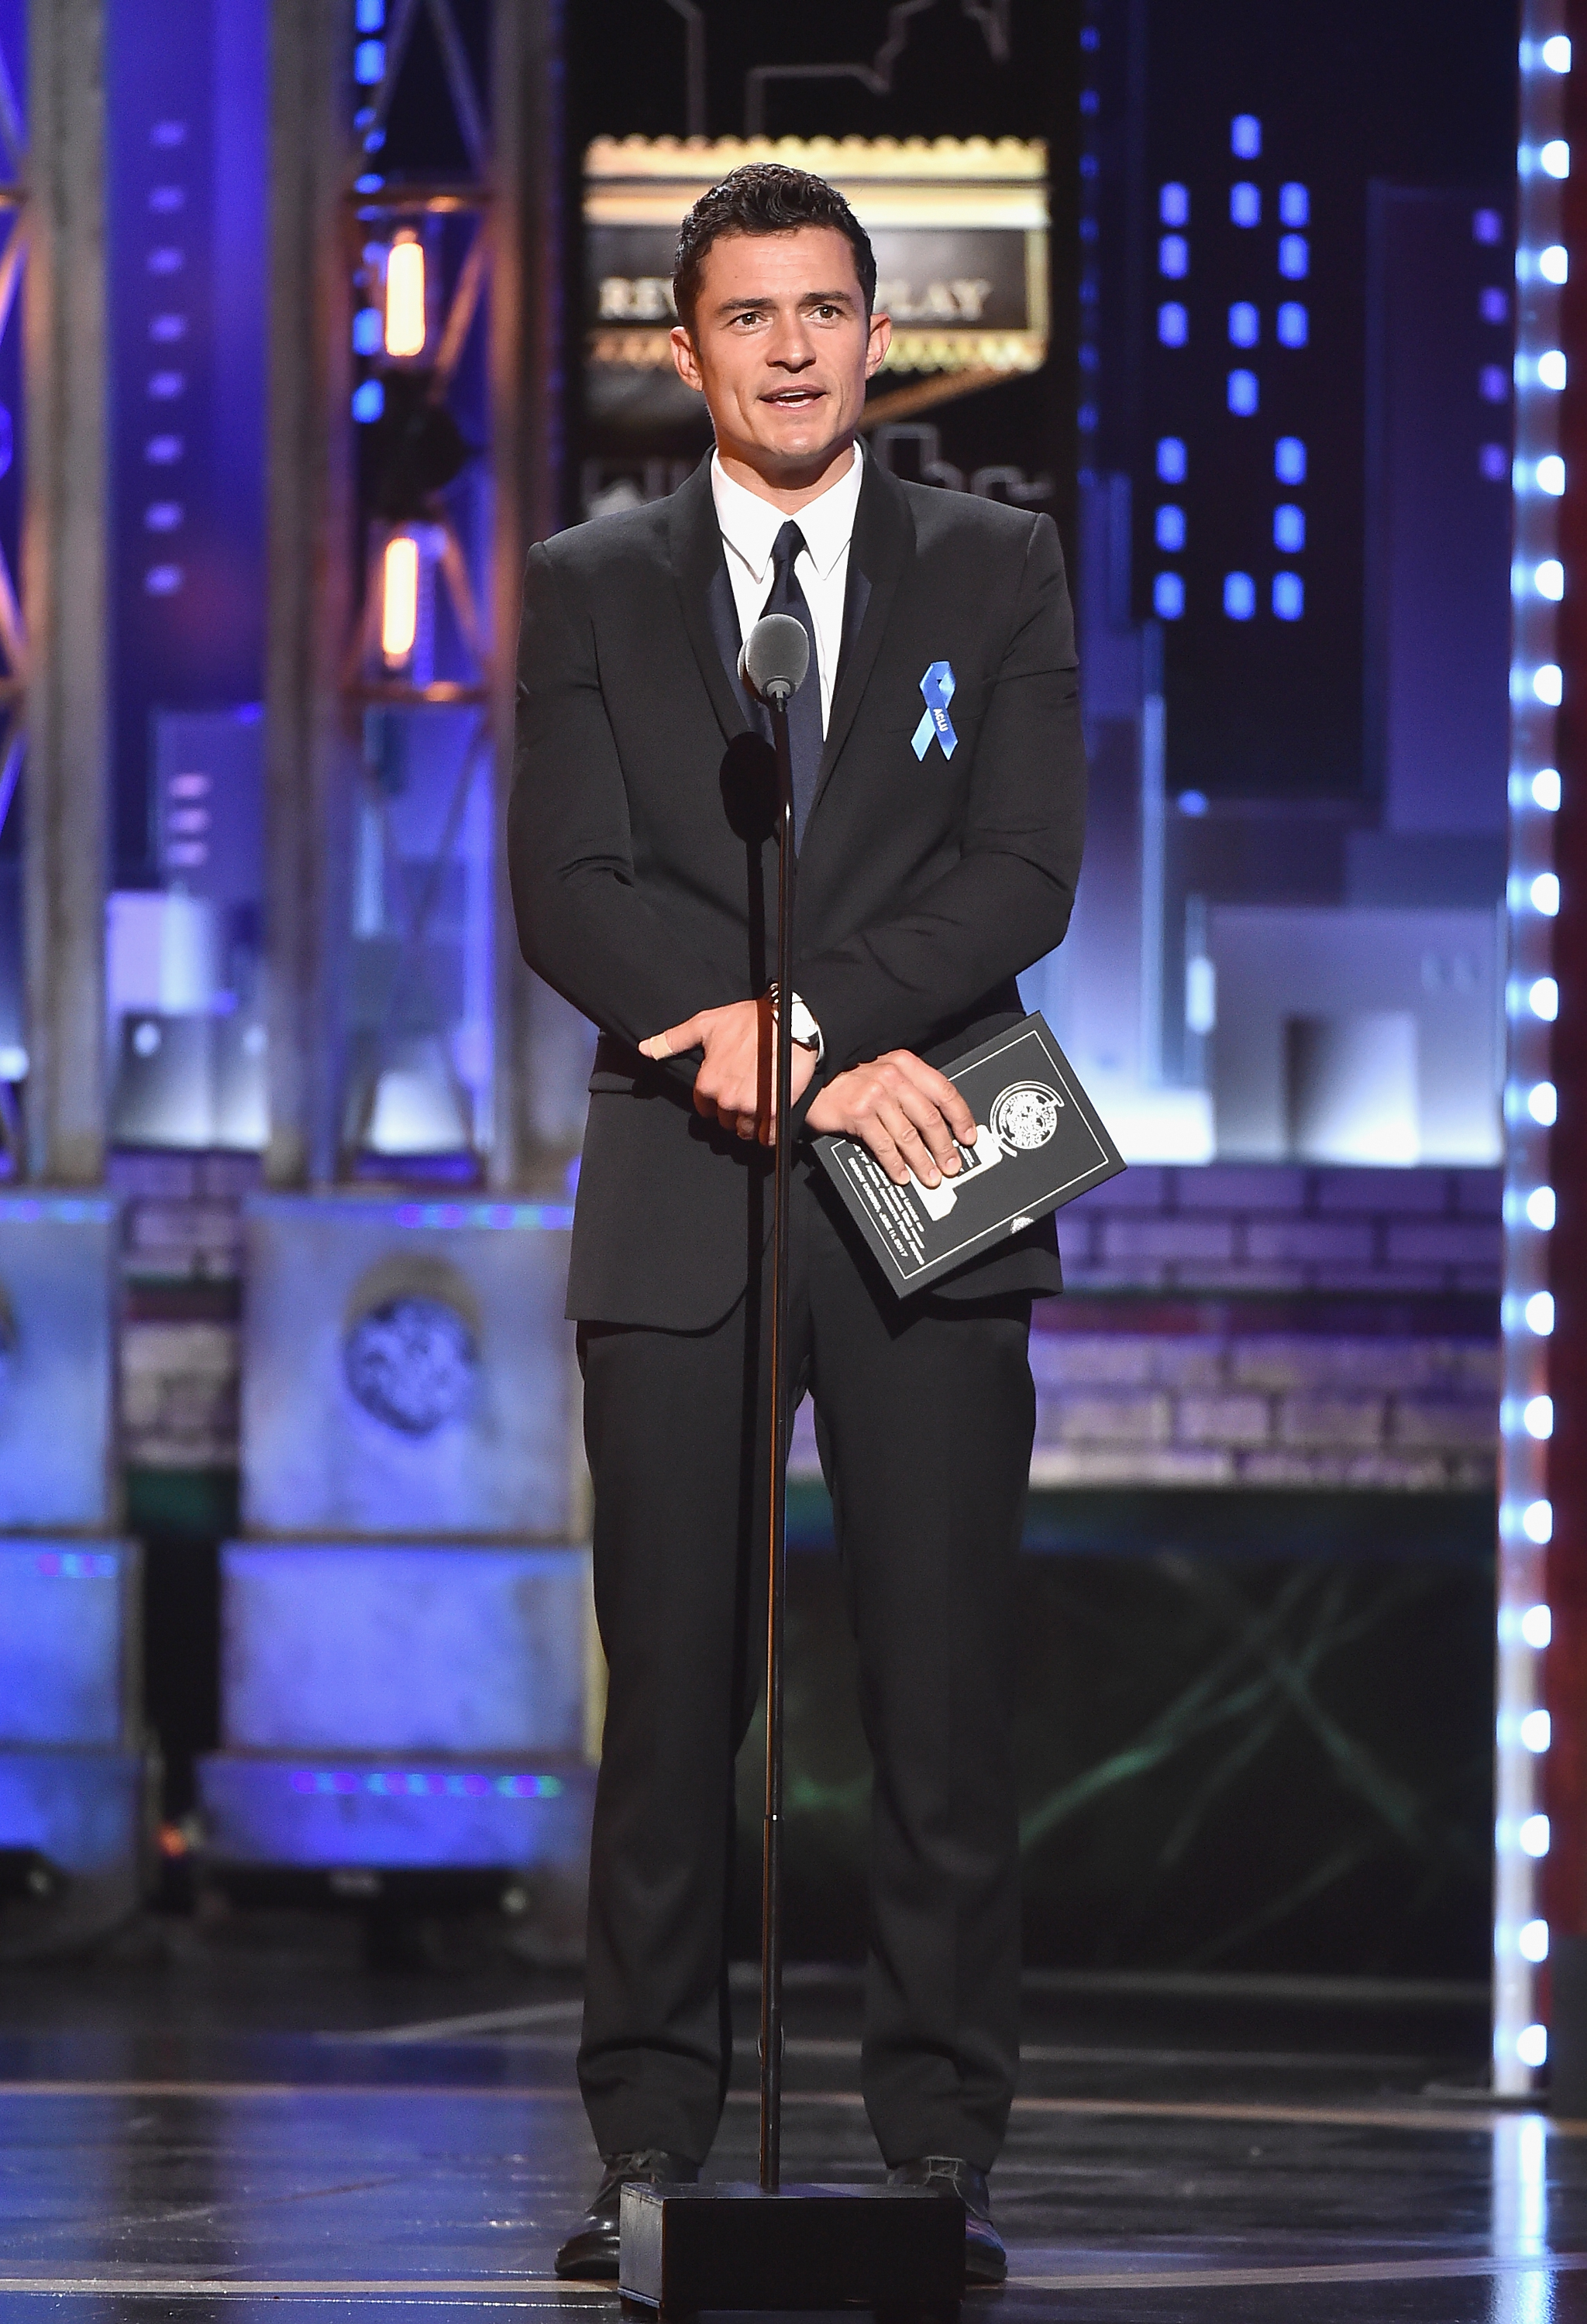 NEW YORK, NY - JUNE 11:  Orlando Bloom speaks onstage during the 2017 Tony Awards at Radio City Music Hall on June 11, 2017 in New York City.  (Photo by Theo Wargo/Getty Images for Tony Awards Productions)